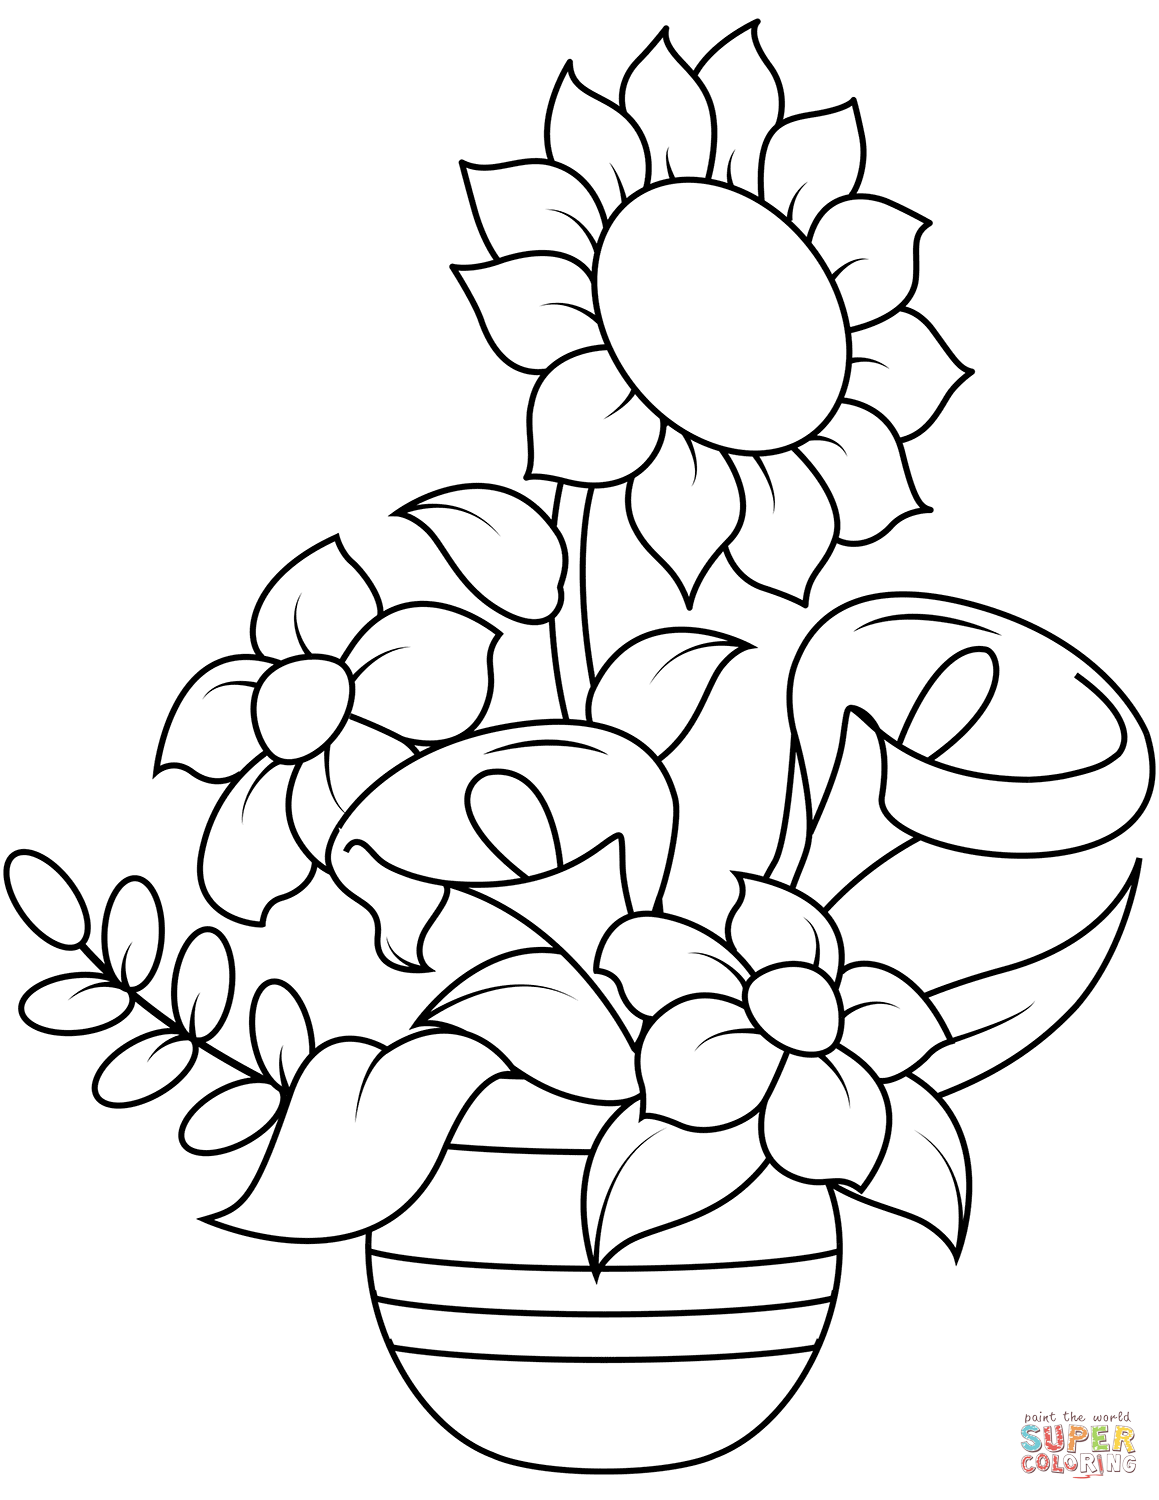 Sunflower And Callas Super Coloring Flower Coloring Pages Flower Drawing Coloring Pages